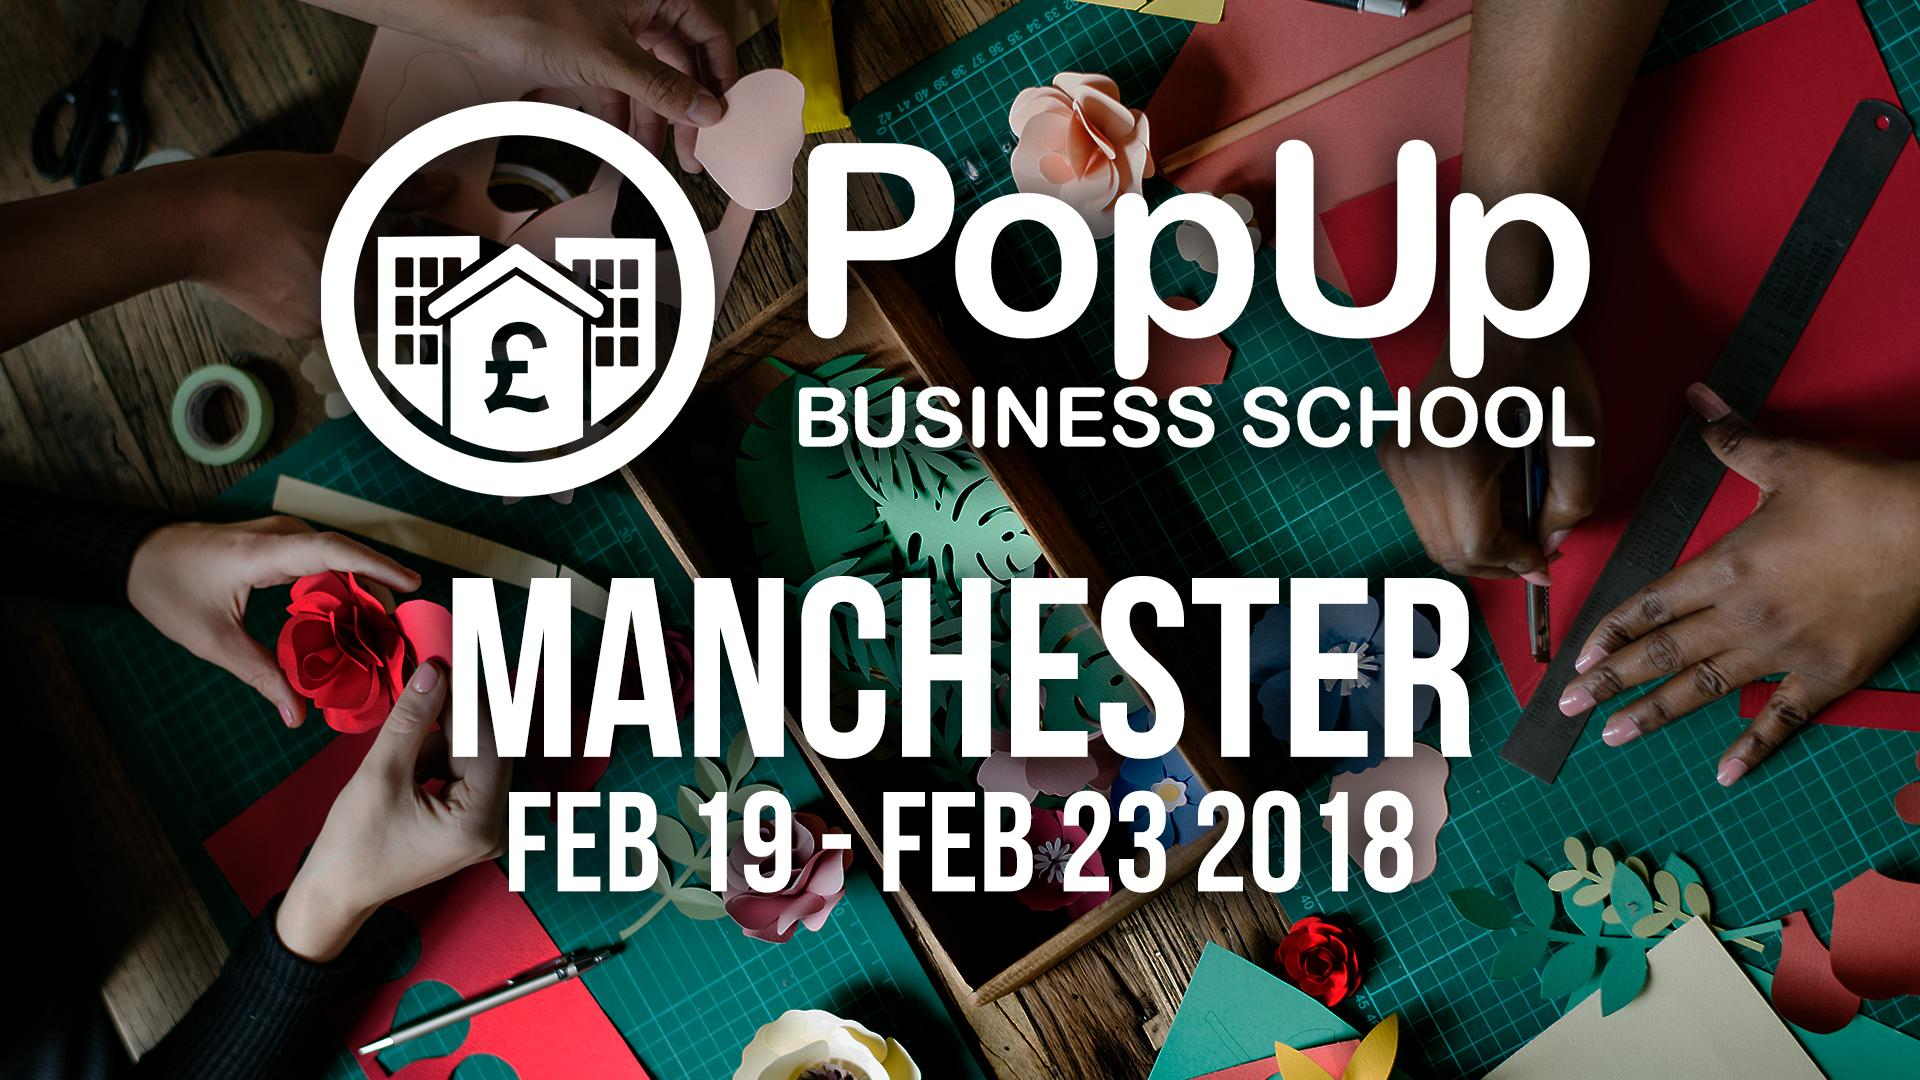 Manchester - PopUp Business School | Making M